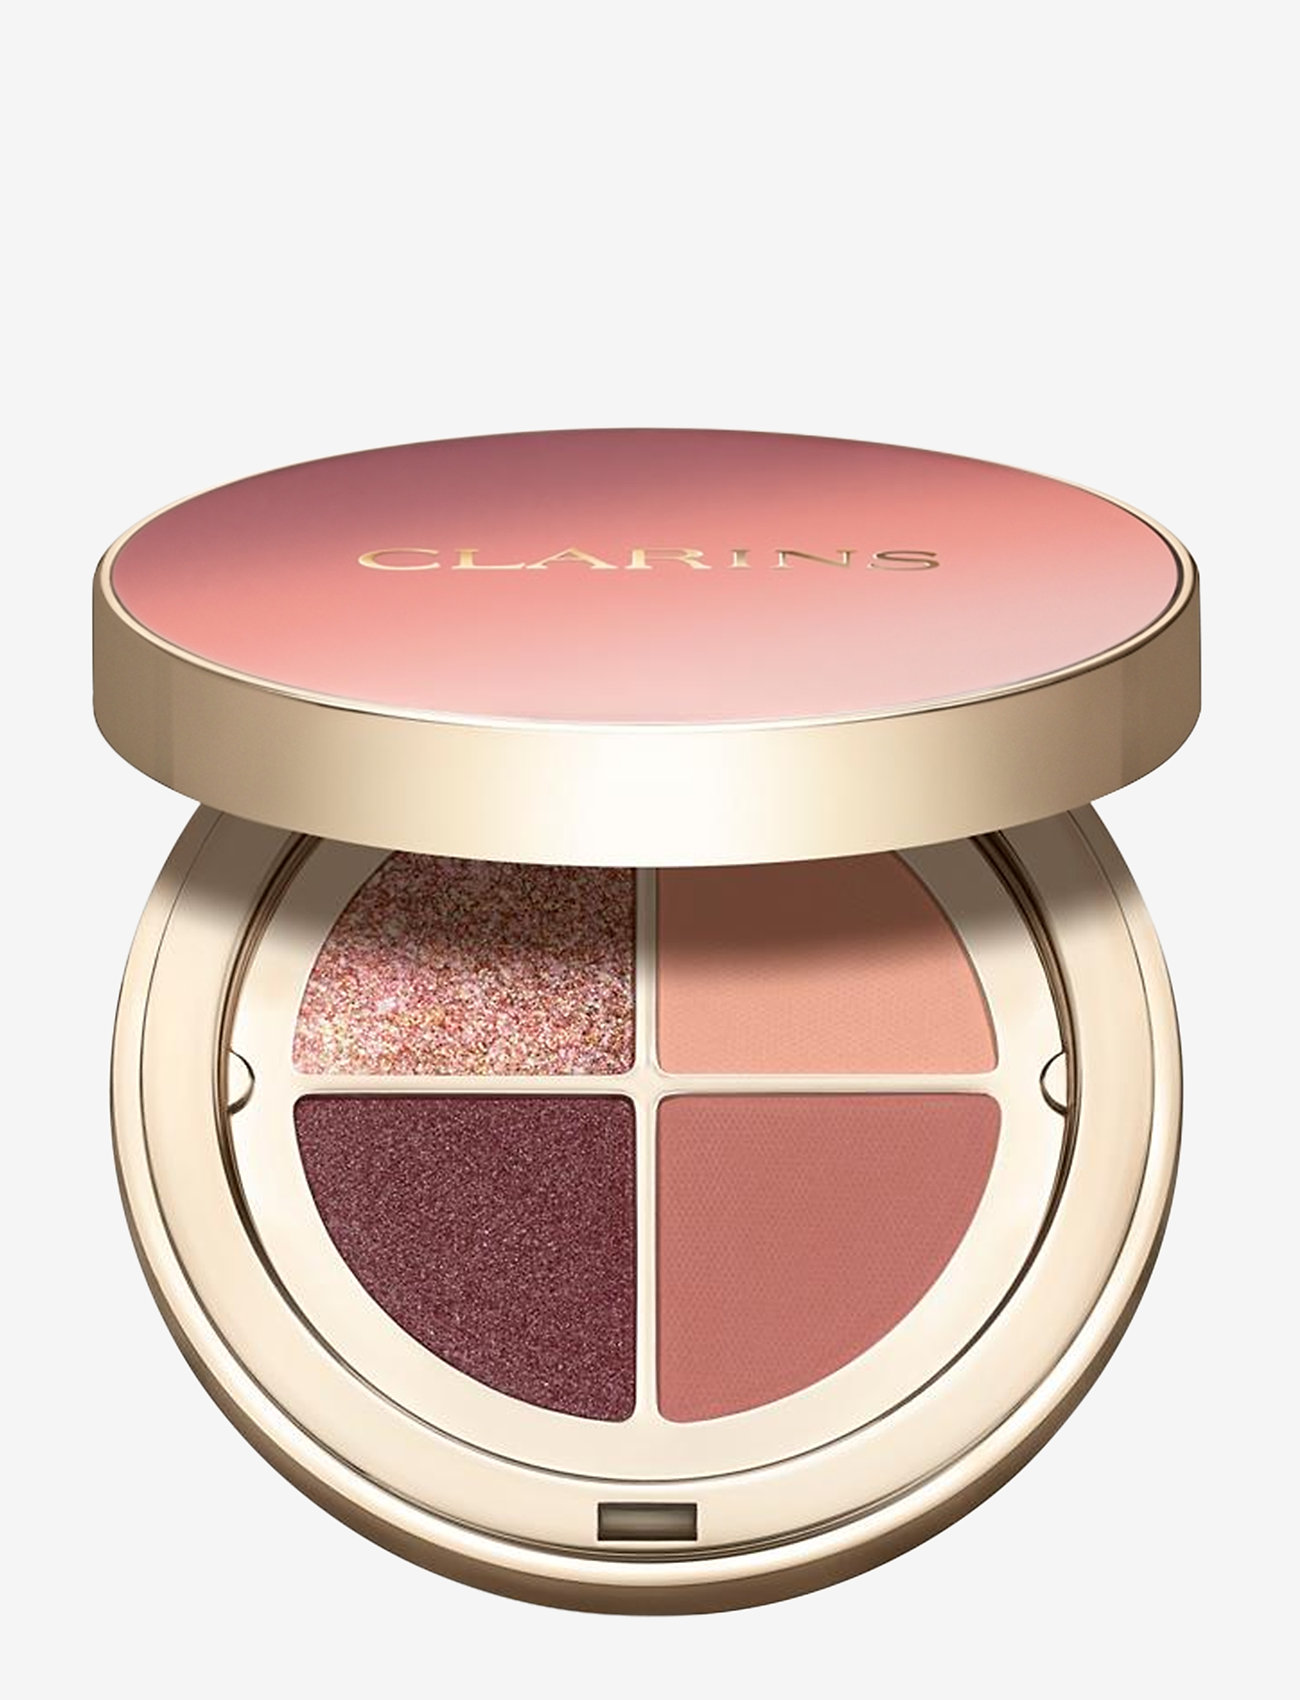 Clarins - Ombre 4 Couleurs 01 Fairy Tale Nude Gradation - Ögonskuggspalett - 01 fairy tale nude gradation - 0